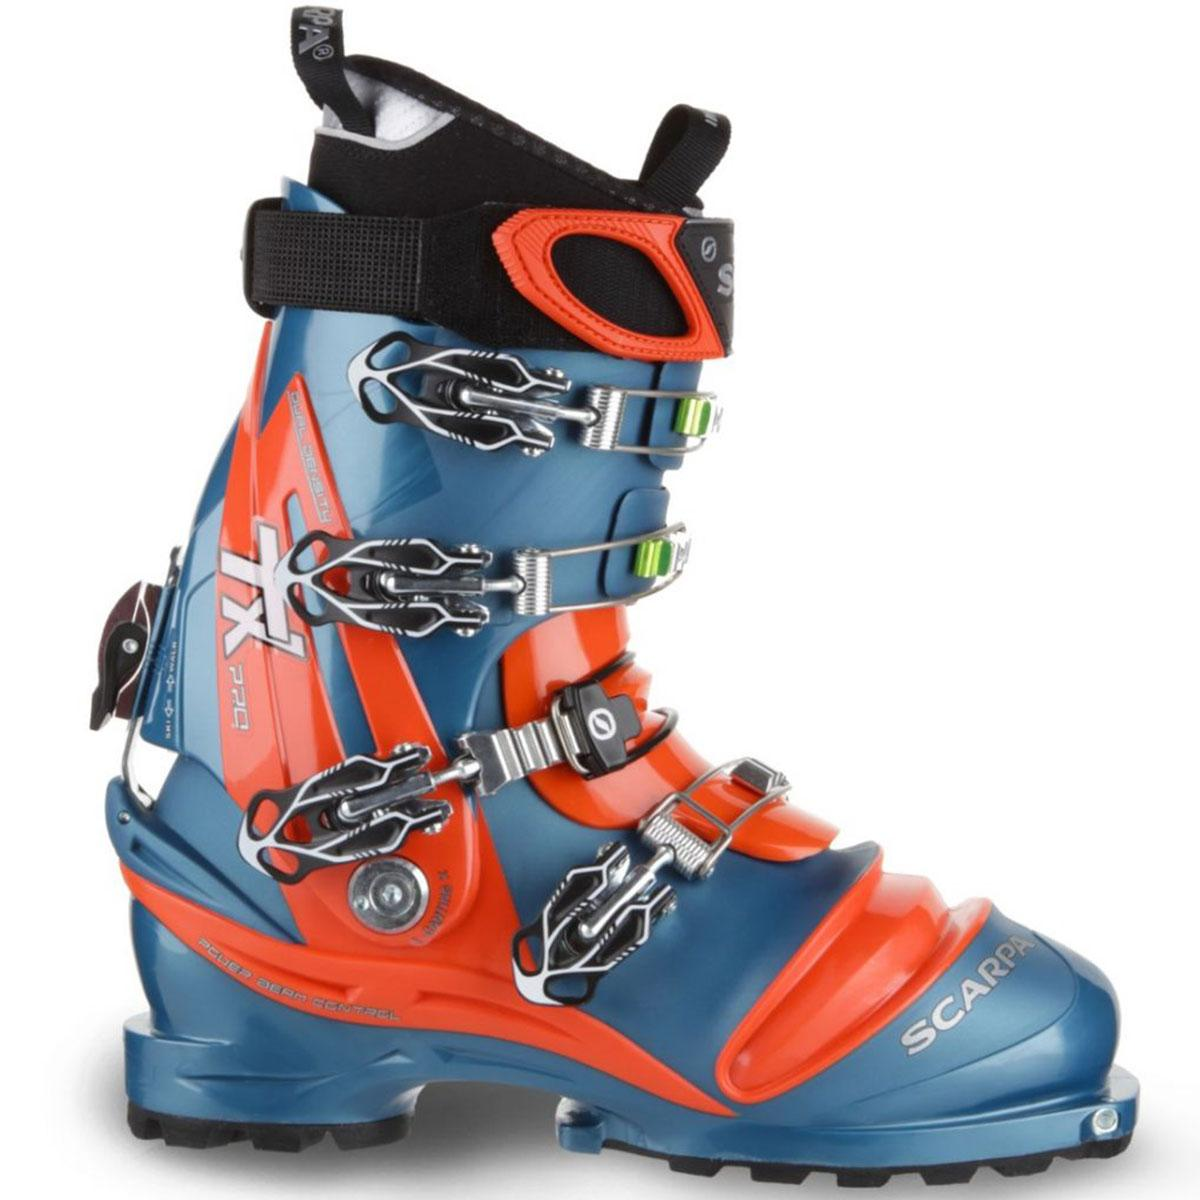 Scarpa TX Pro men's Telemark ski boot in lyons blue and orange